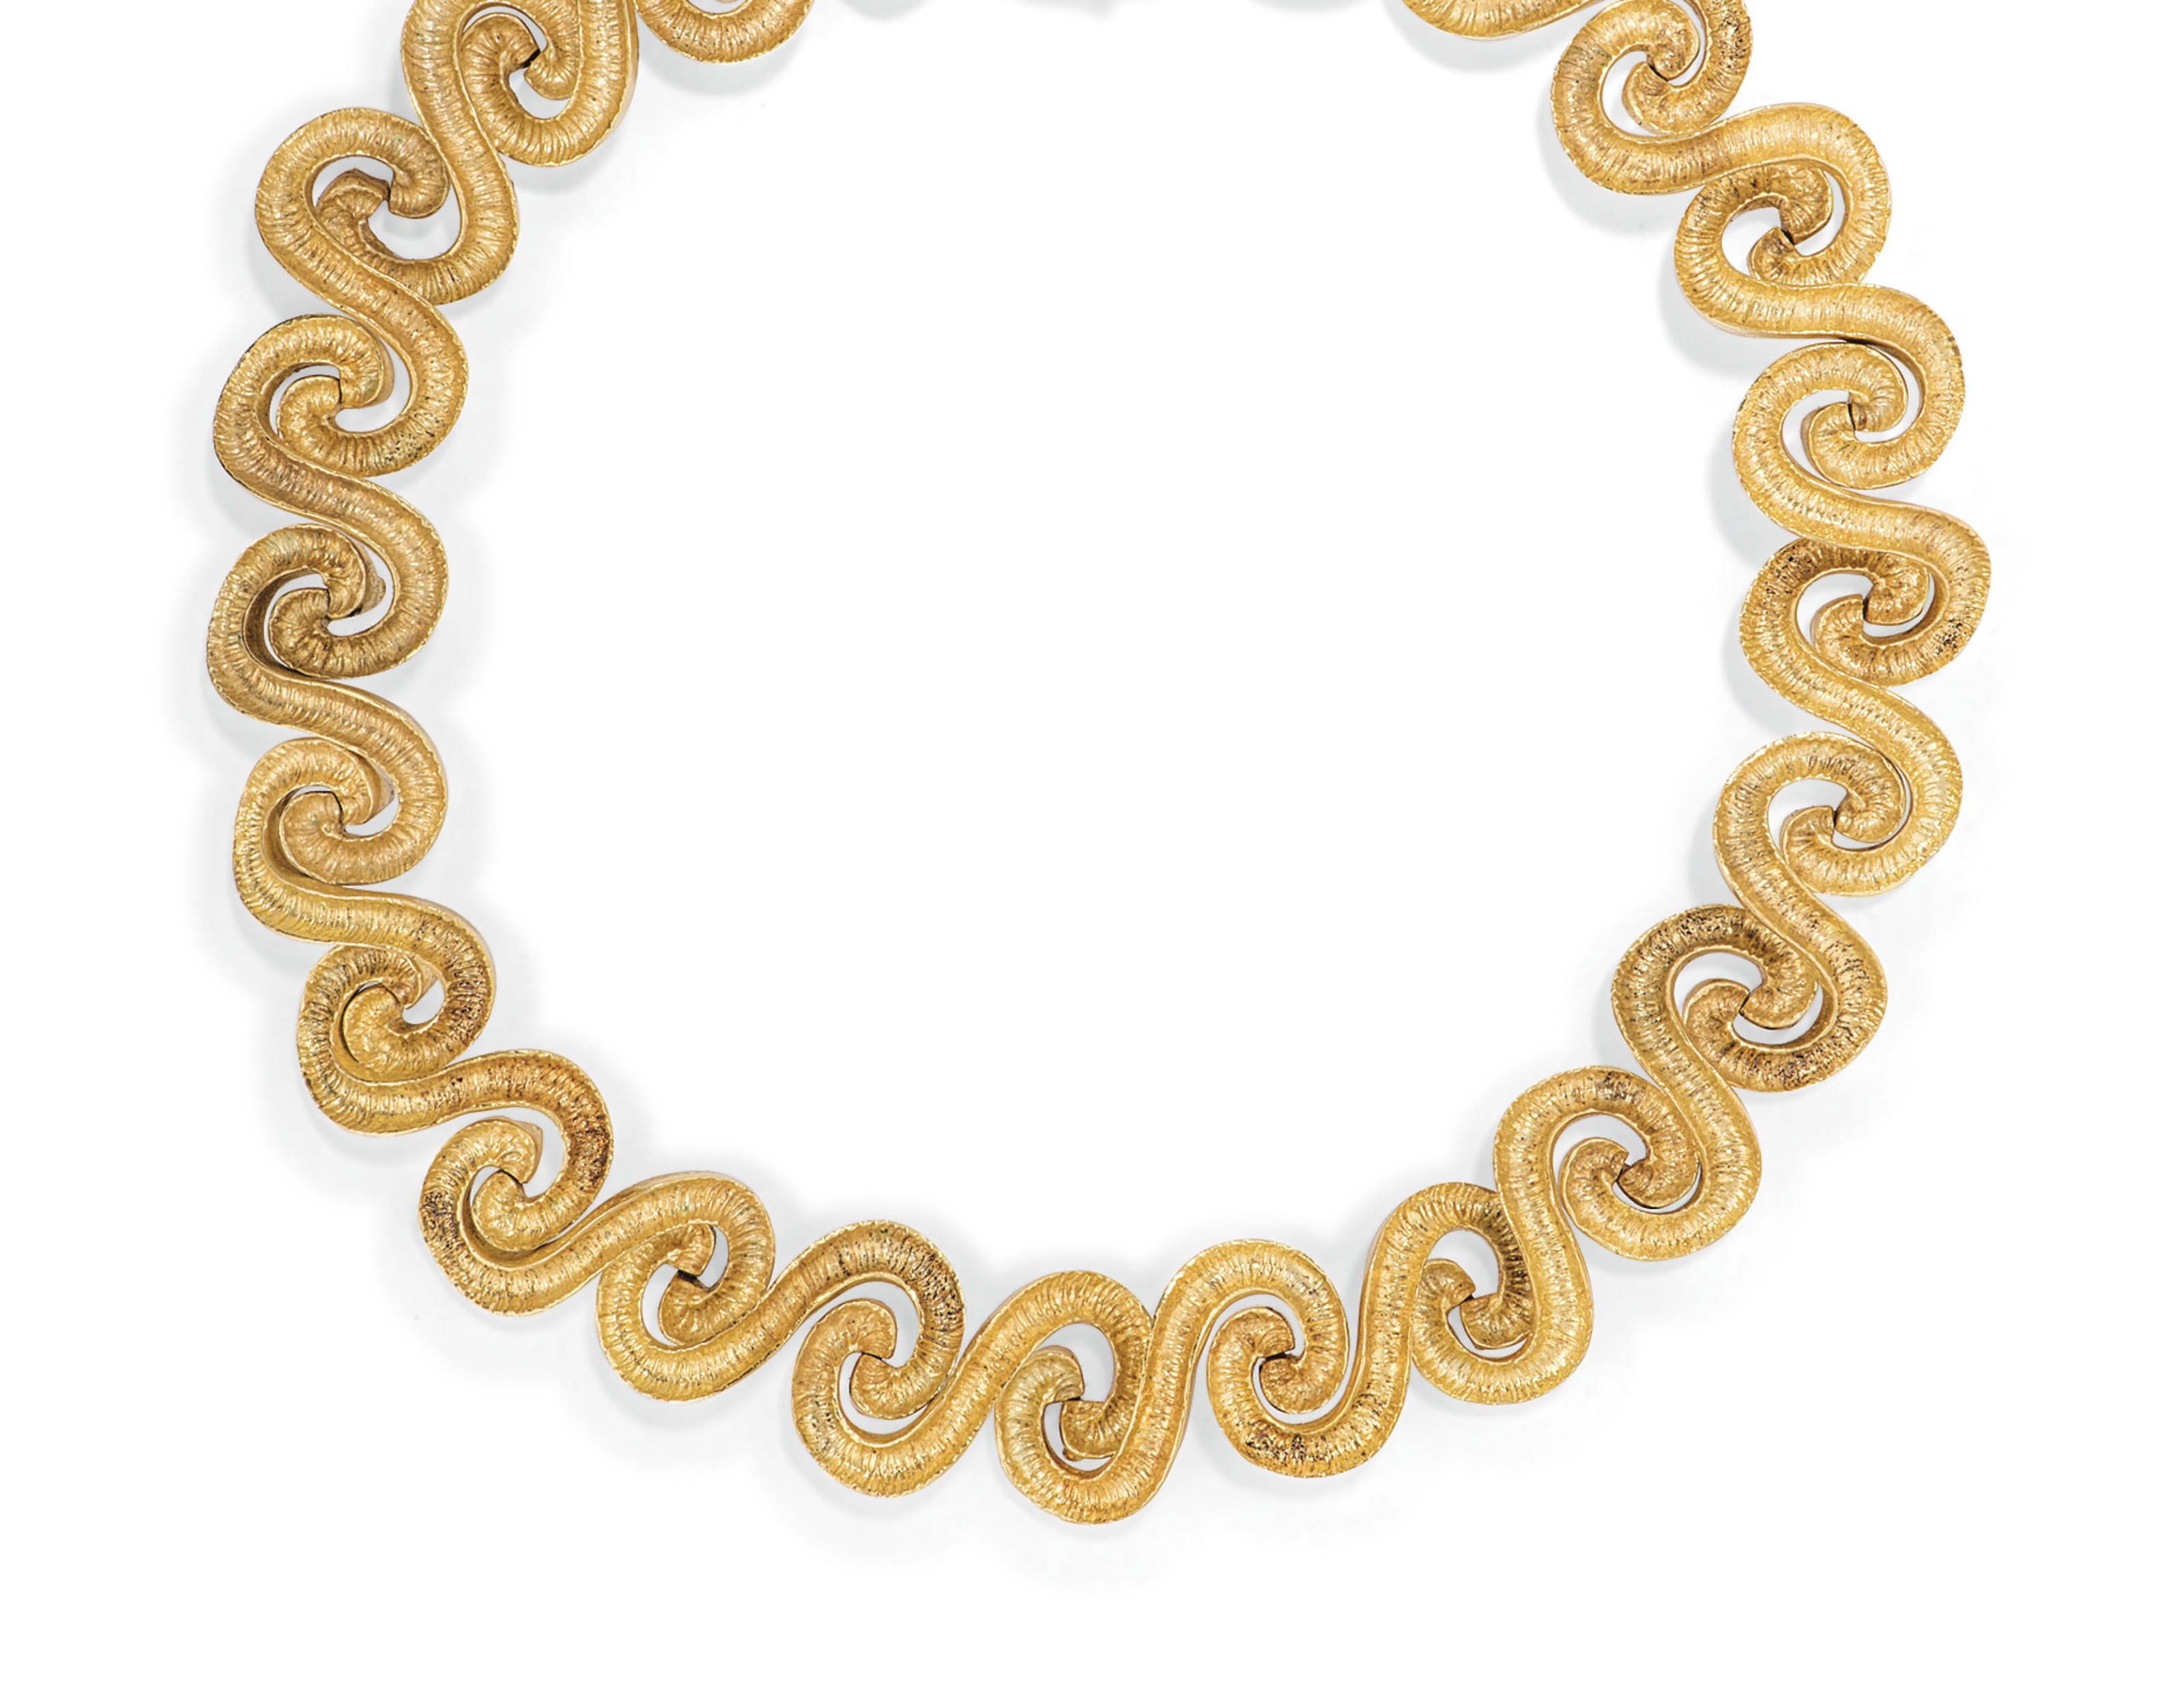 A NECKLACE, BY ZOLOTAS